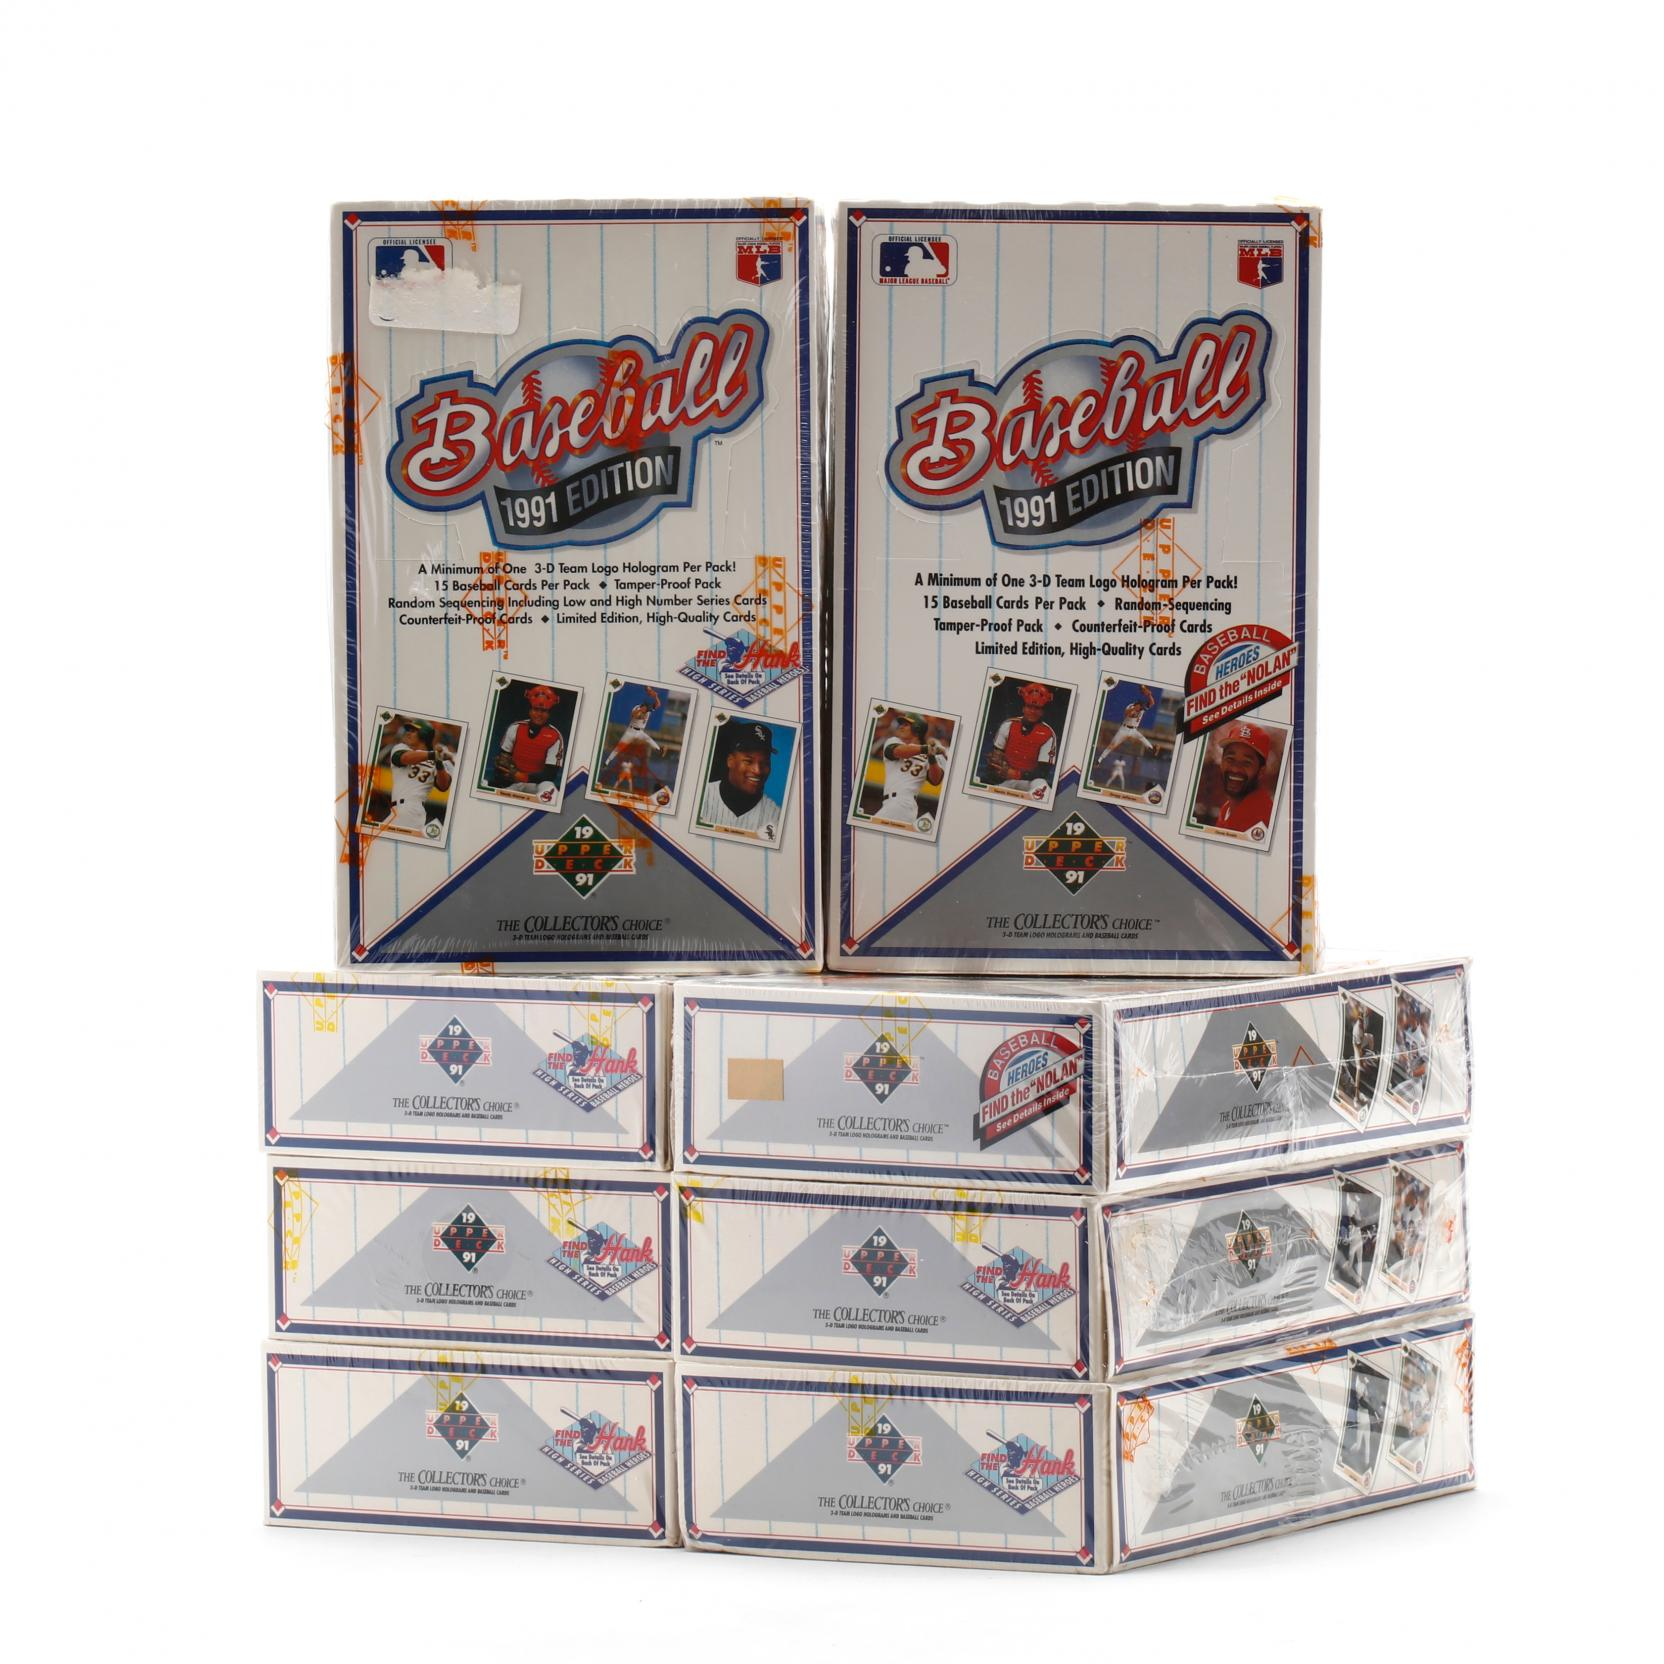 eight-boxes-upper-deck-1991-edition-baseball-cards